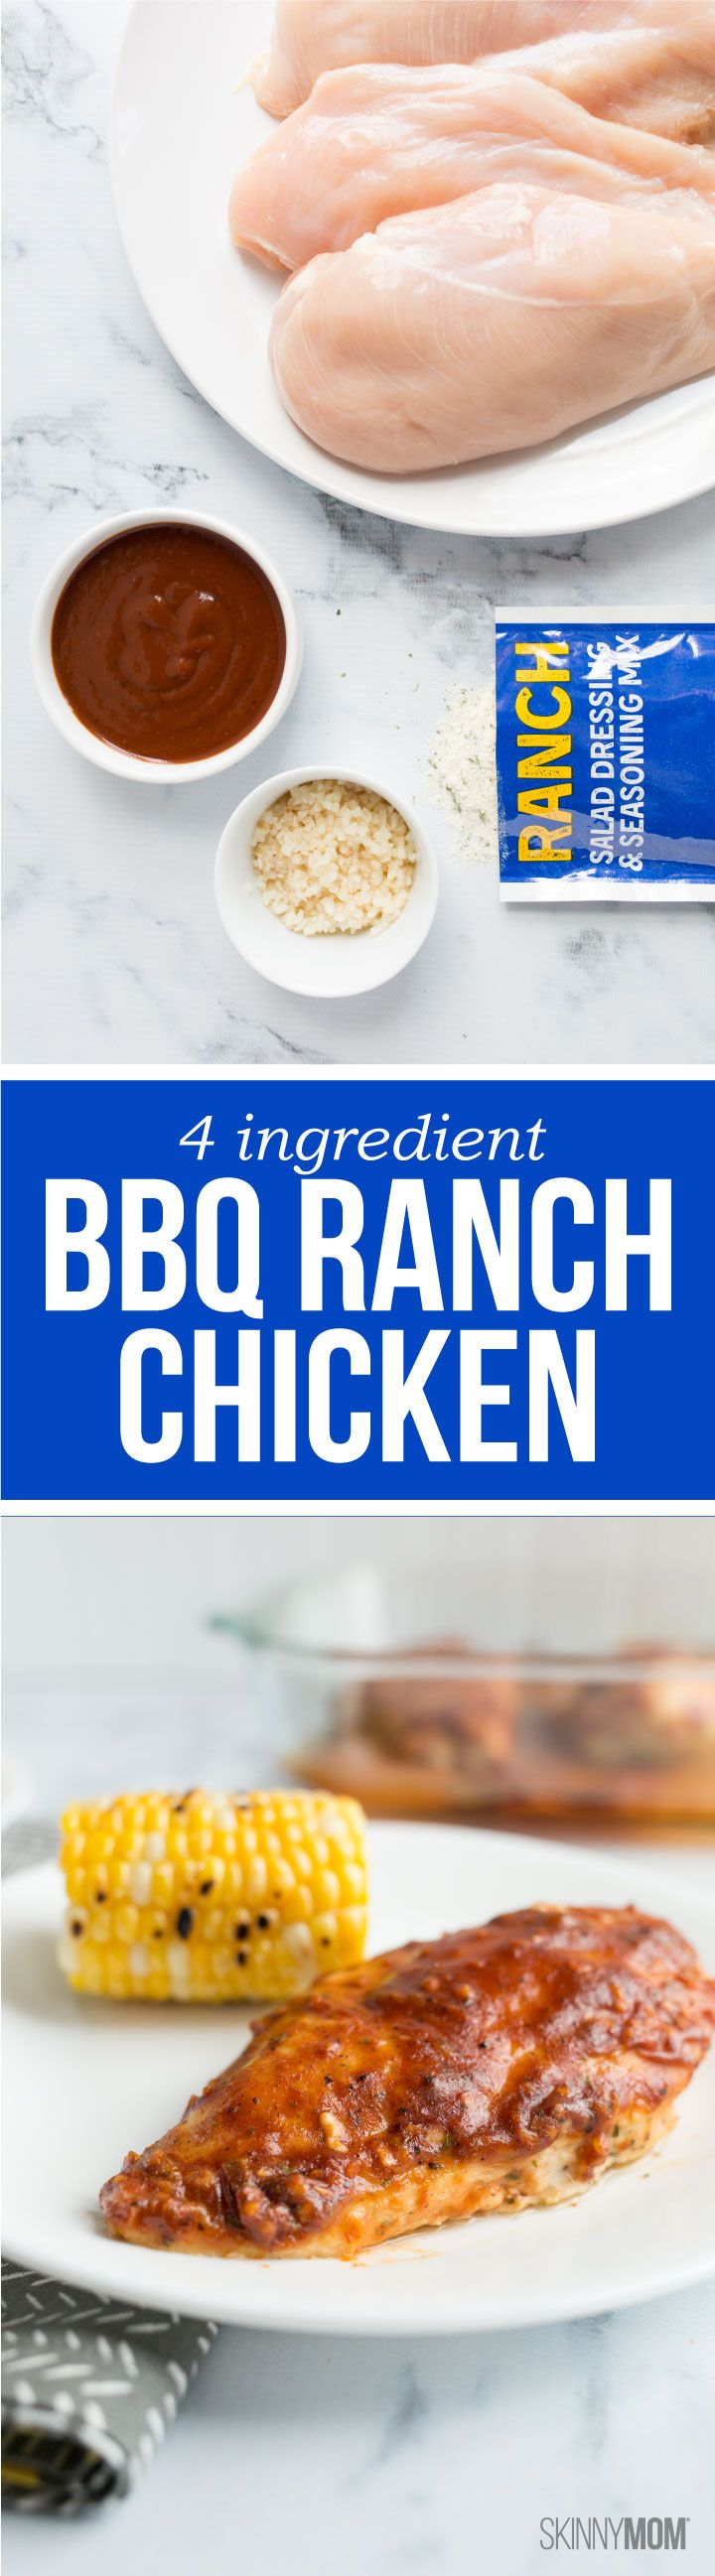 4-Ingredient BBQ Ranch Baked Chicken: 196 calories | 3 SmartPoints